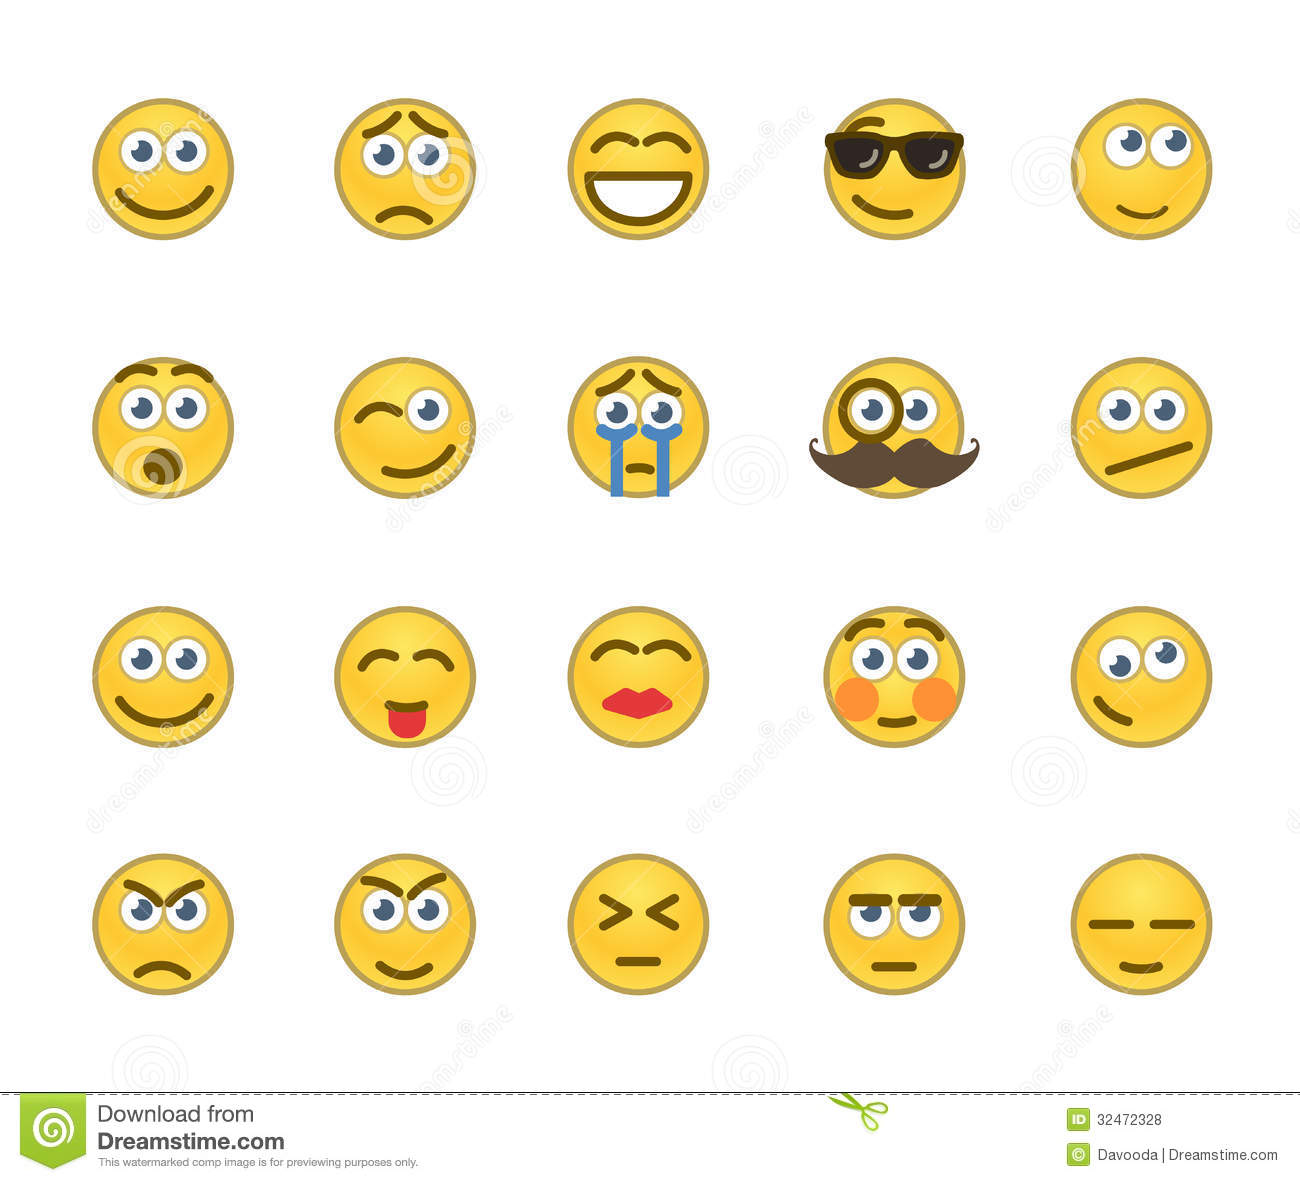 Smiley face behavior chart template